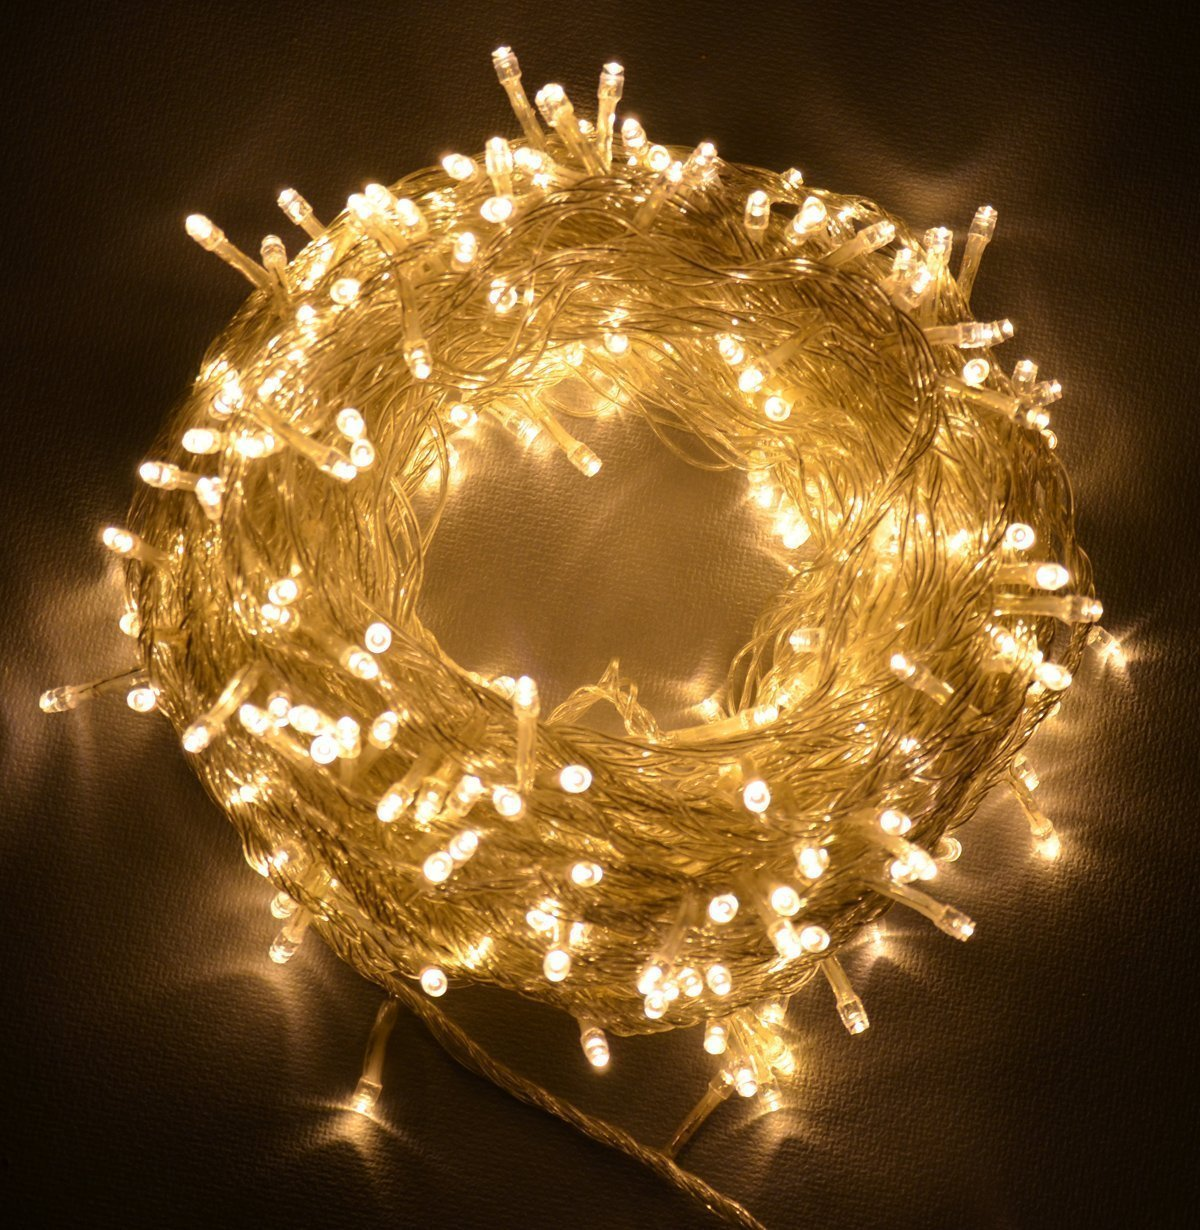 Indoor String Lights Pinterest : Image Gallery indoor fairy lights string